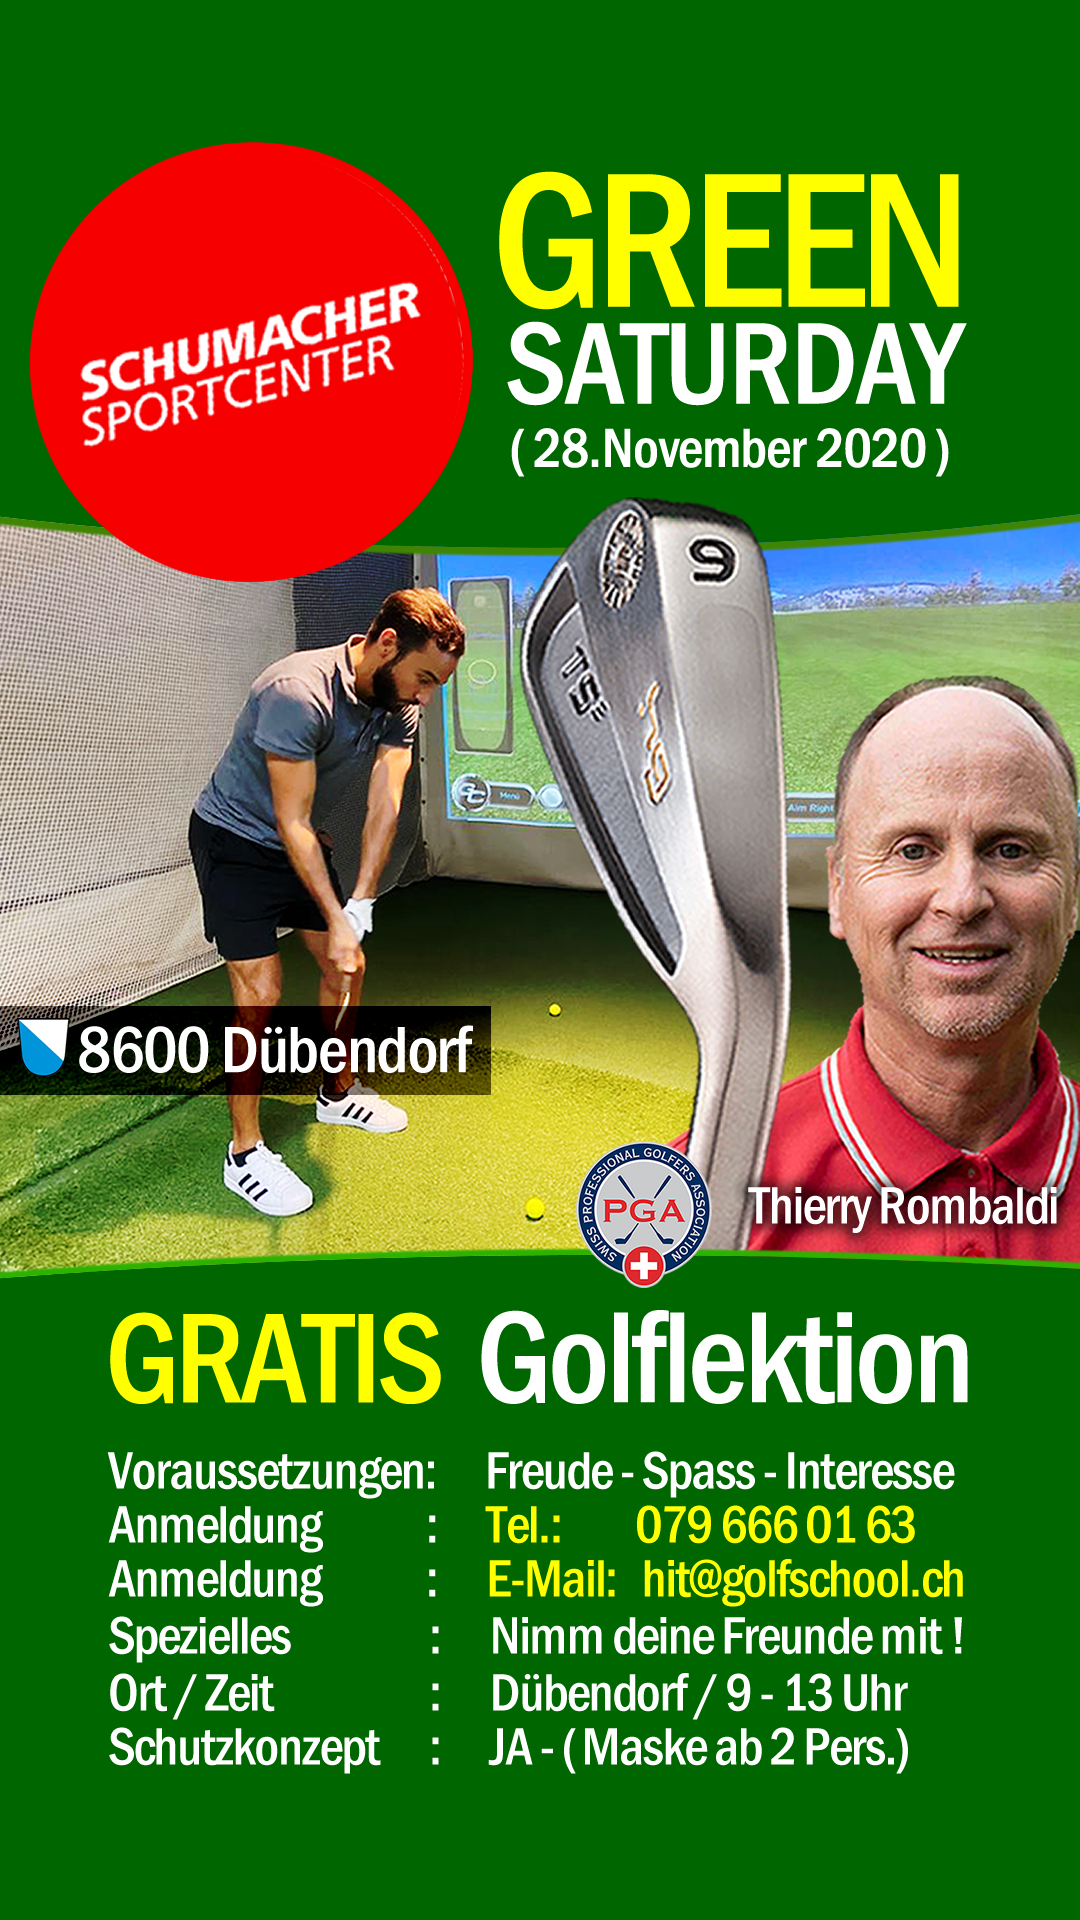 AKTION-GREEN-FRIDAY-GOLFSCHULE-ZURICH-SCHUMACHERCENTER-DUEBENDORF